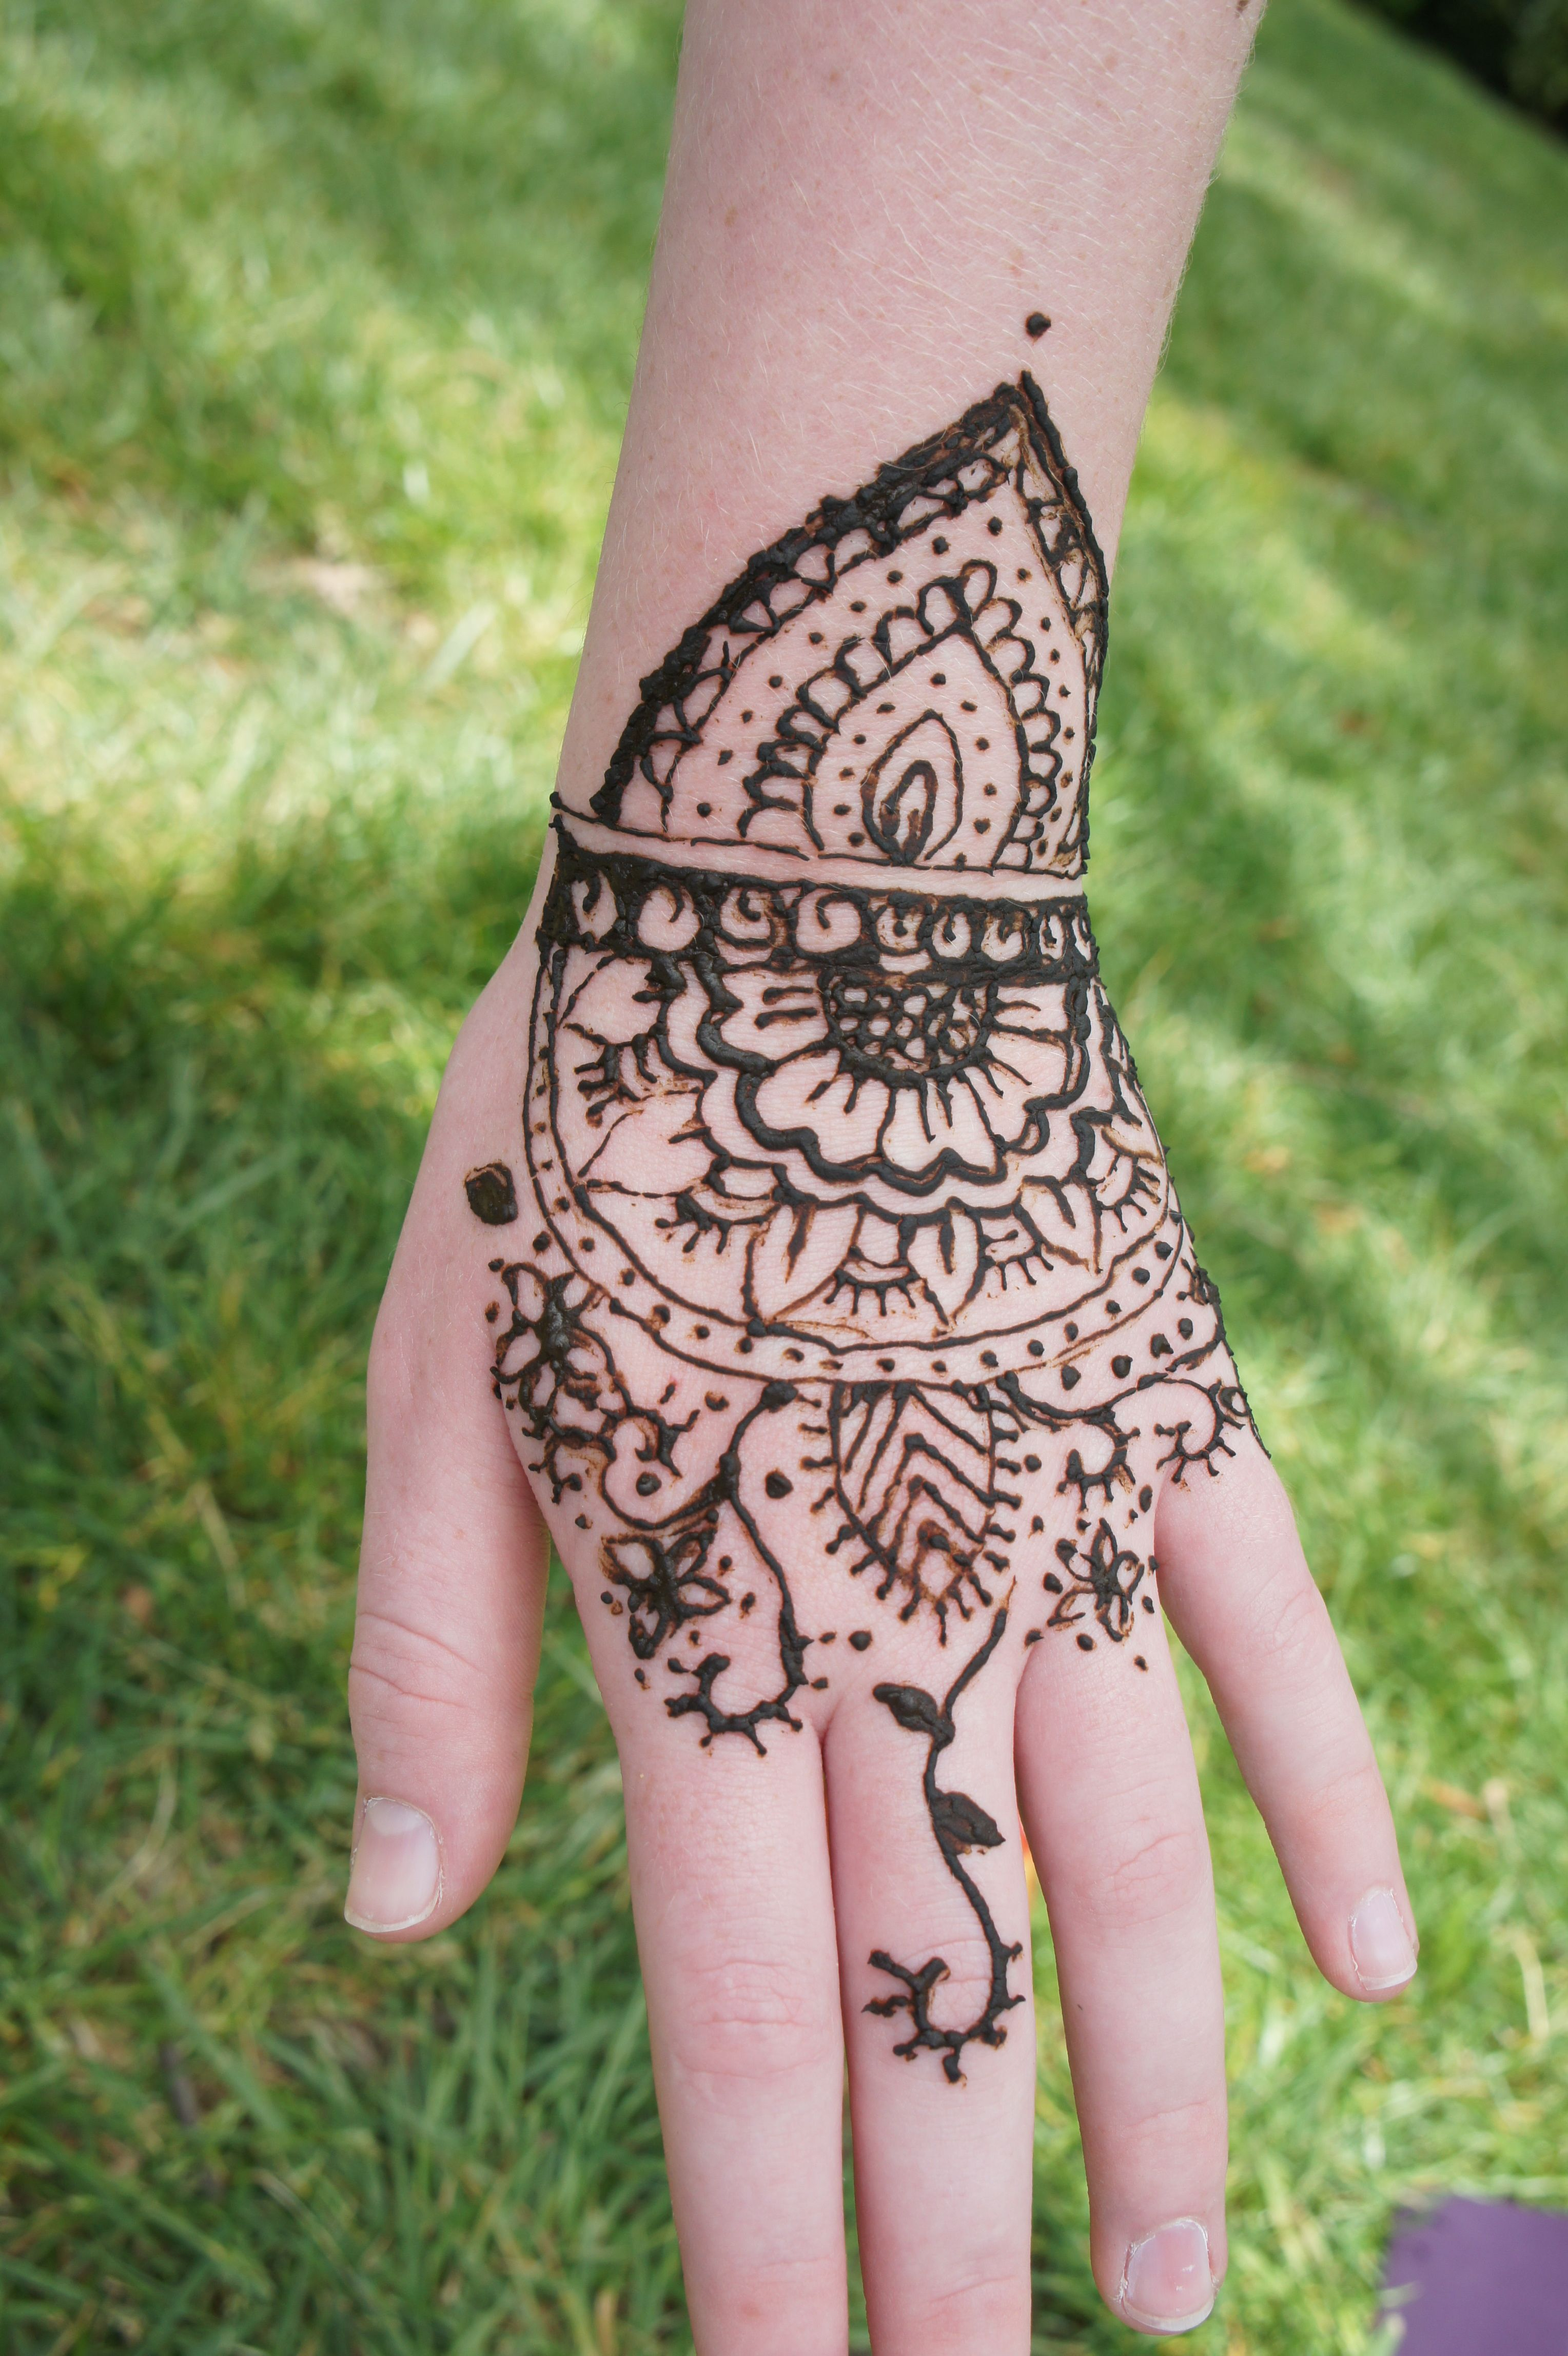 59 Henna Tattoo Designs Ideas: Henna Tattoo Designs, Henna Tattoo, Henna